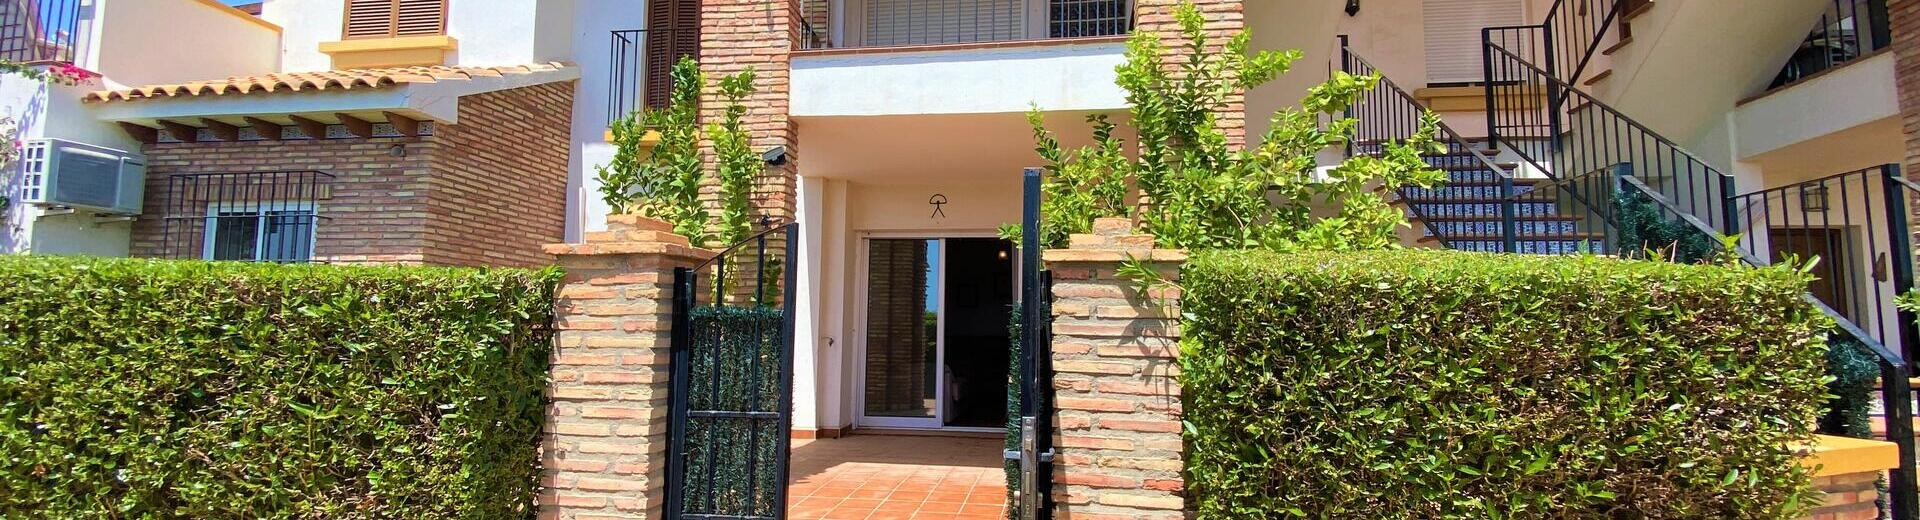 VIP7921: Apartment for Sale